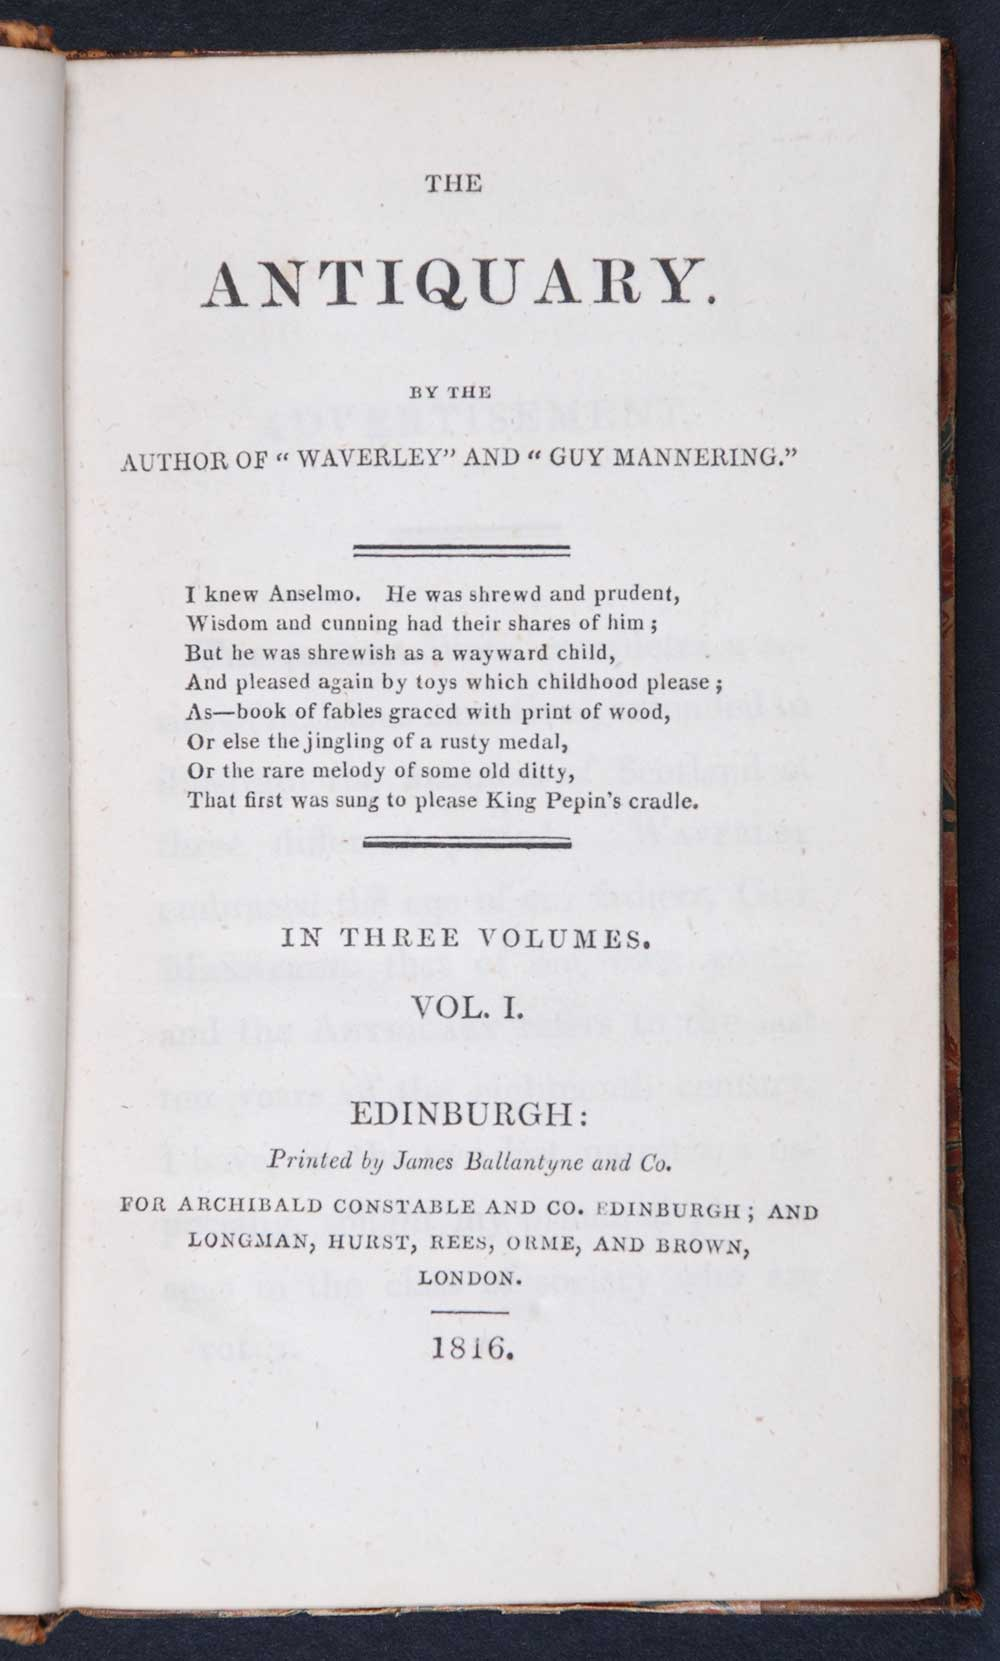 [Sir Walter Scott]. <em>The antiquary.</em> [1st edition]. Edinburgh: Printed by James Ballantyne and Co. for Archibald Constable and Co., Edinburgh; and Longman, Hurst, Rees, Orme, and Brown, London, 1816. Three volumes; Vol. 1 displayed.